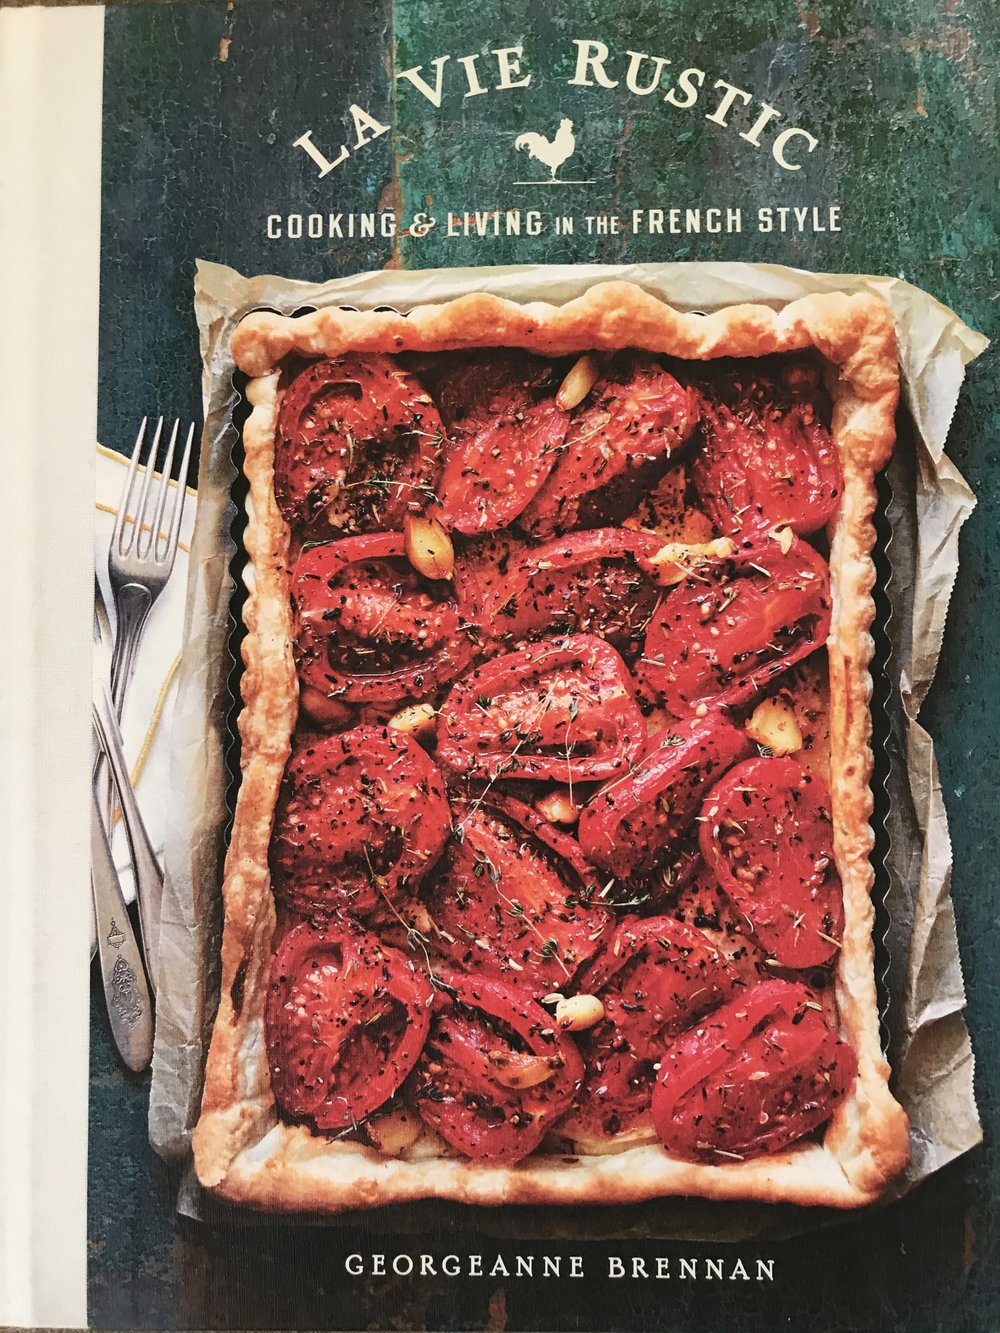 The Latest Cookbook from Georgeanne Brennan